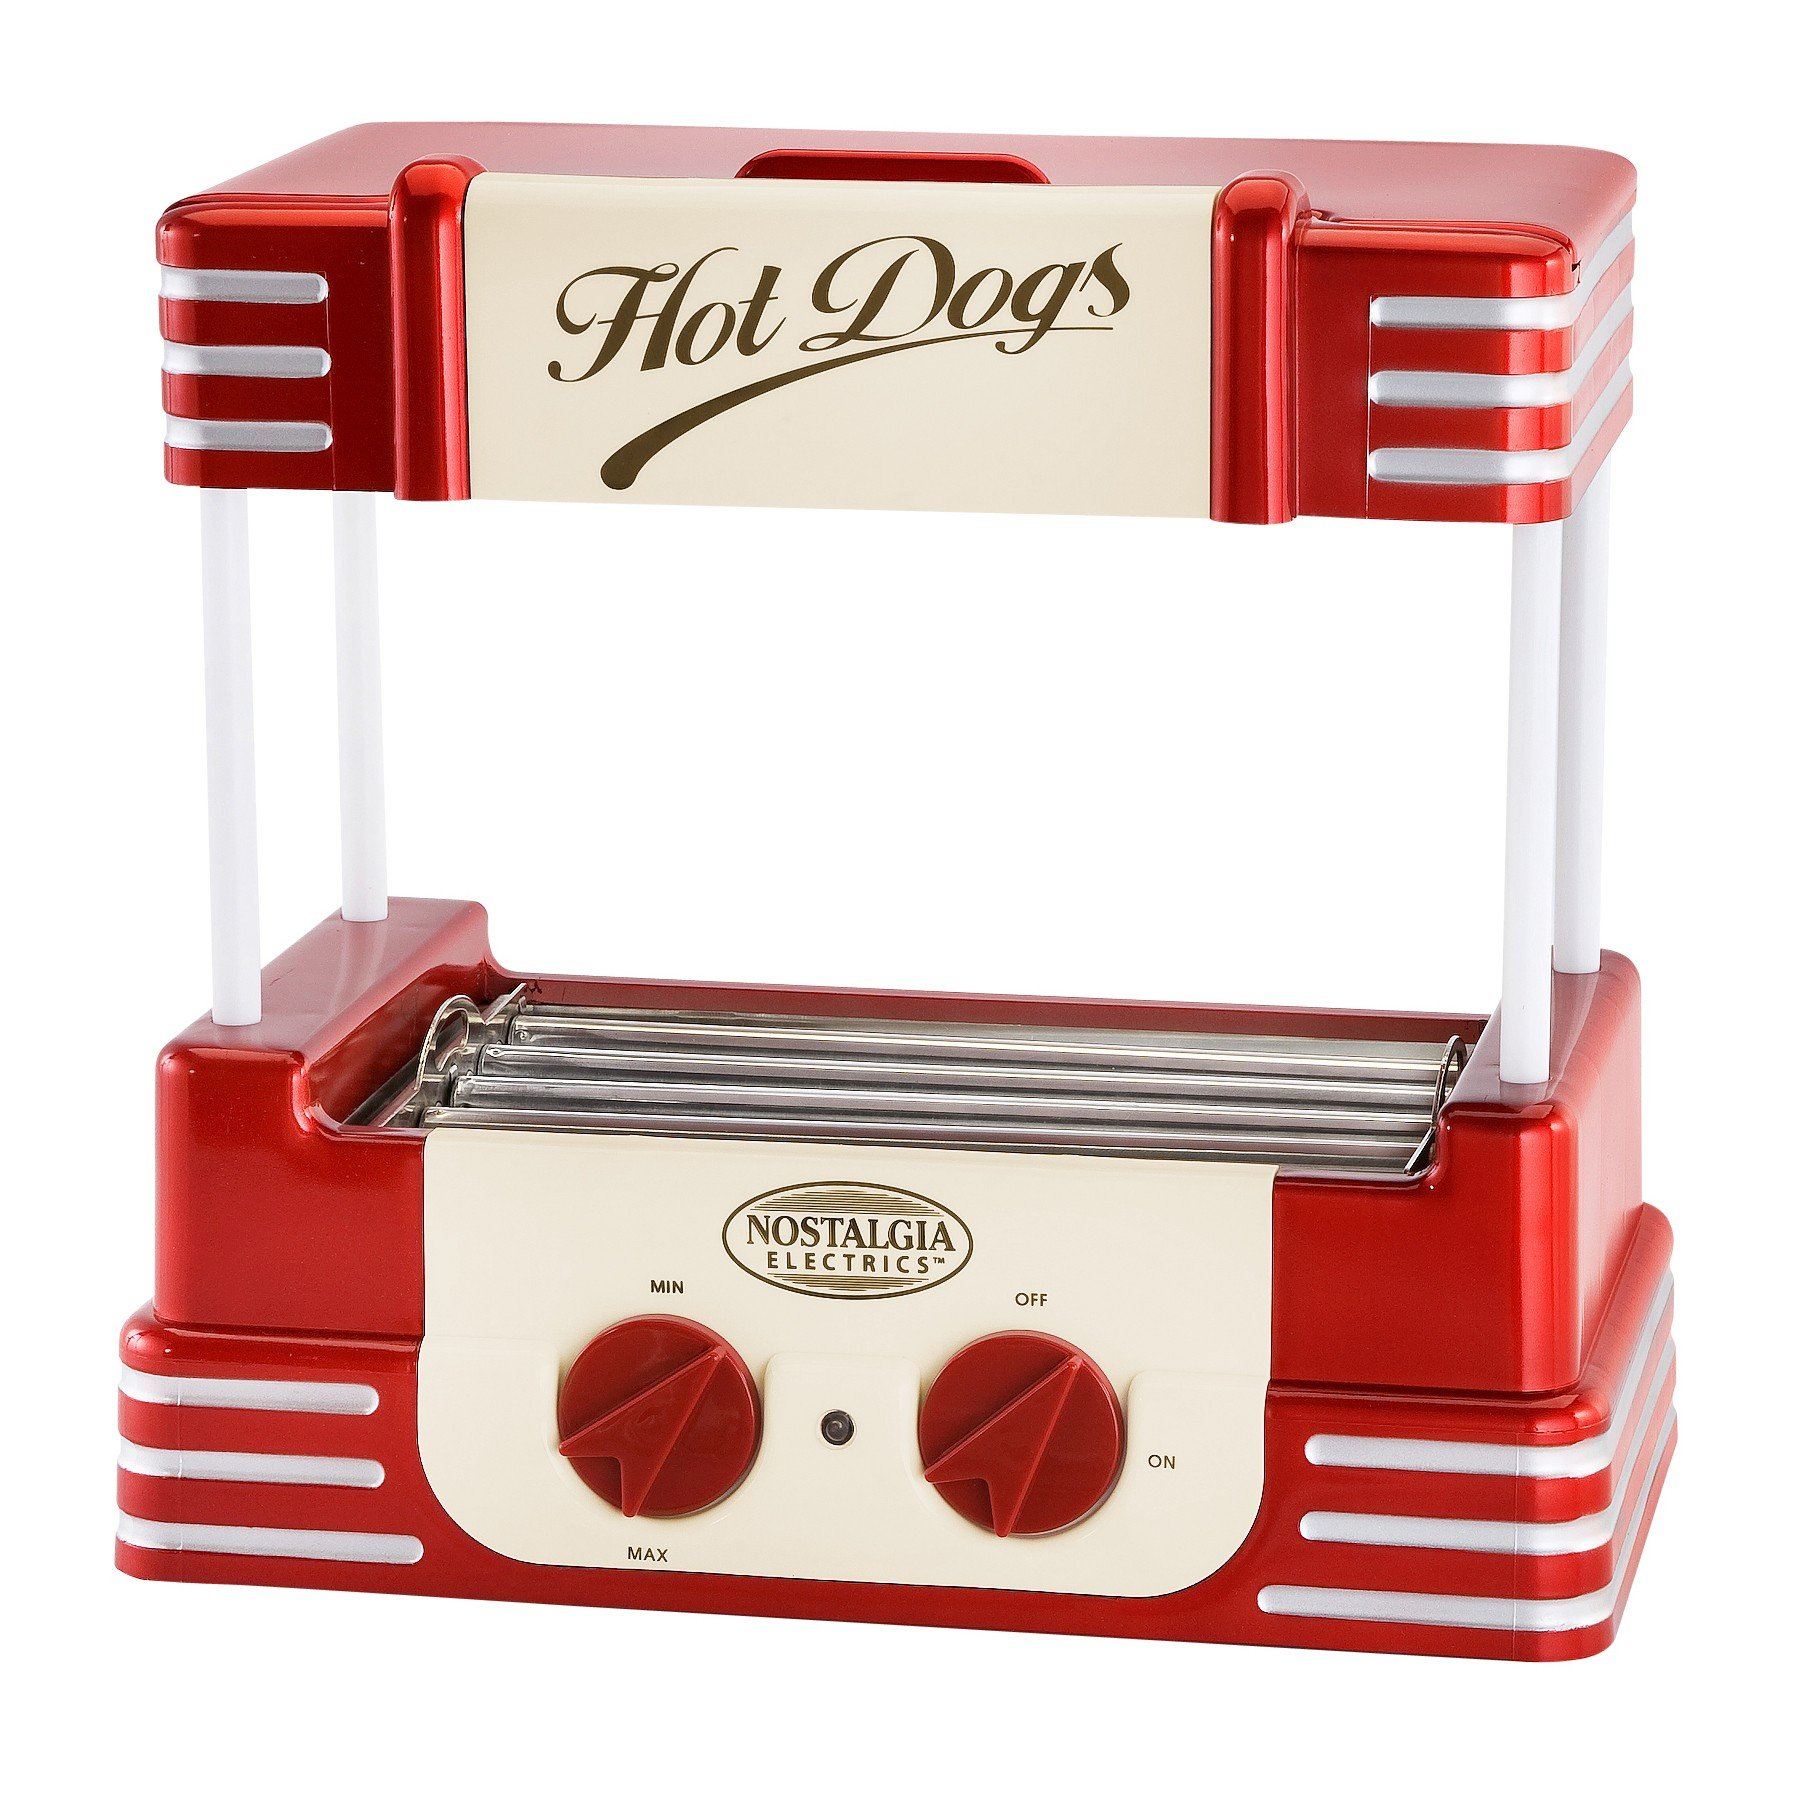 Nostalgia Electrics RHD-800 Retro Hot Dog Roller